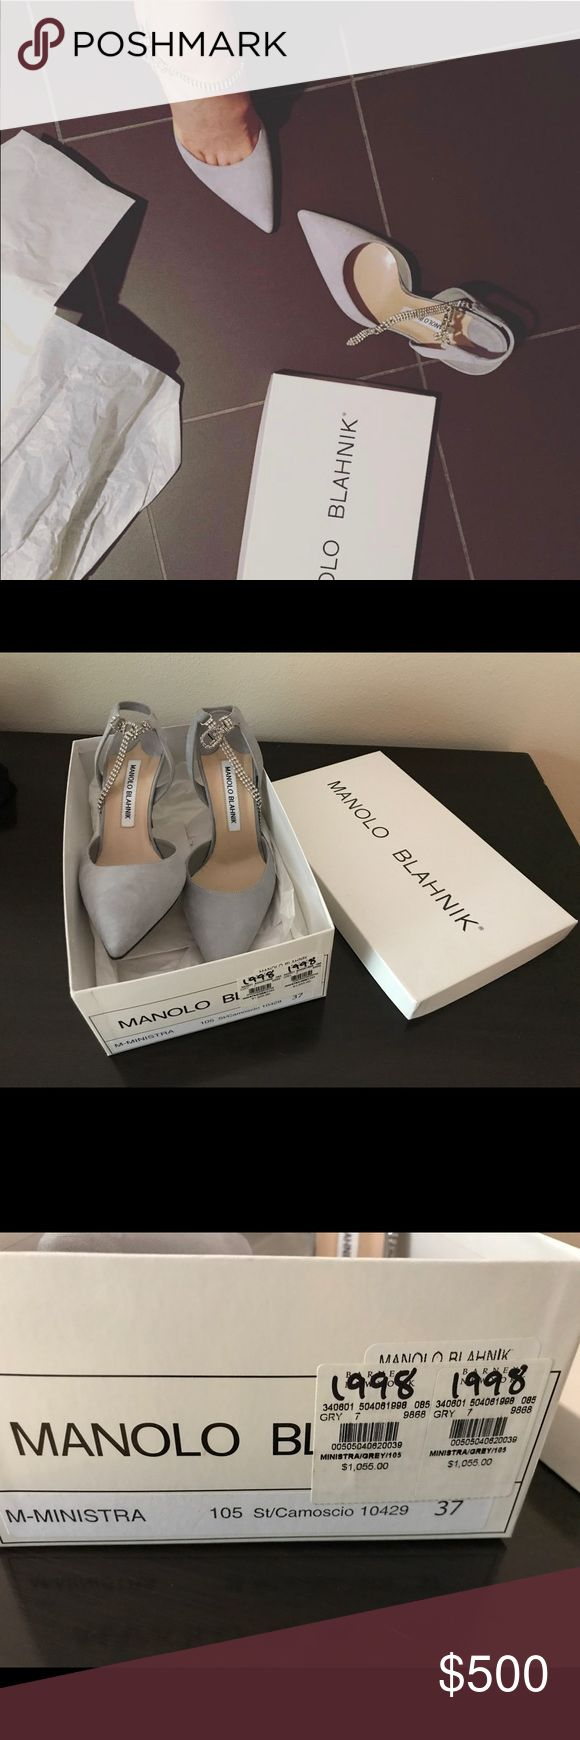 Authentic Manolo blahnik heel size 37 Light grey color suede Manolo Blahnik heels size 37. Purchased from Barney's newyork official website. I have the receipt and the original box. I only worn this shoes for 2 hours inside of a hotel room for a birthday party. There is no damages or any stains at all except the bottom of the shoes has some stains as you can see in the photos. Manolo Blahnik Shoes Heels